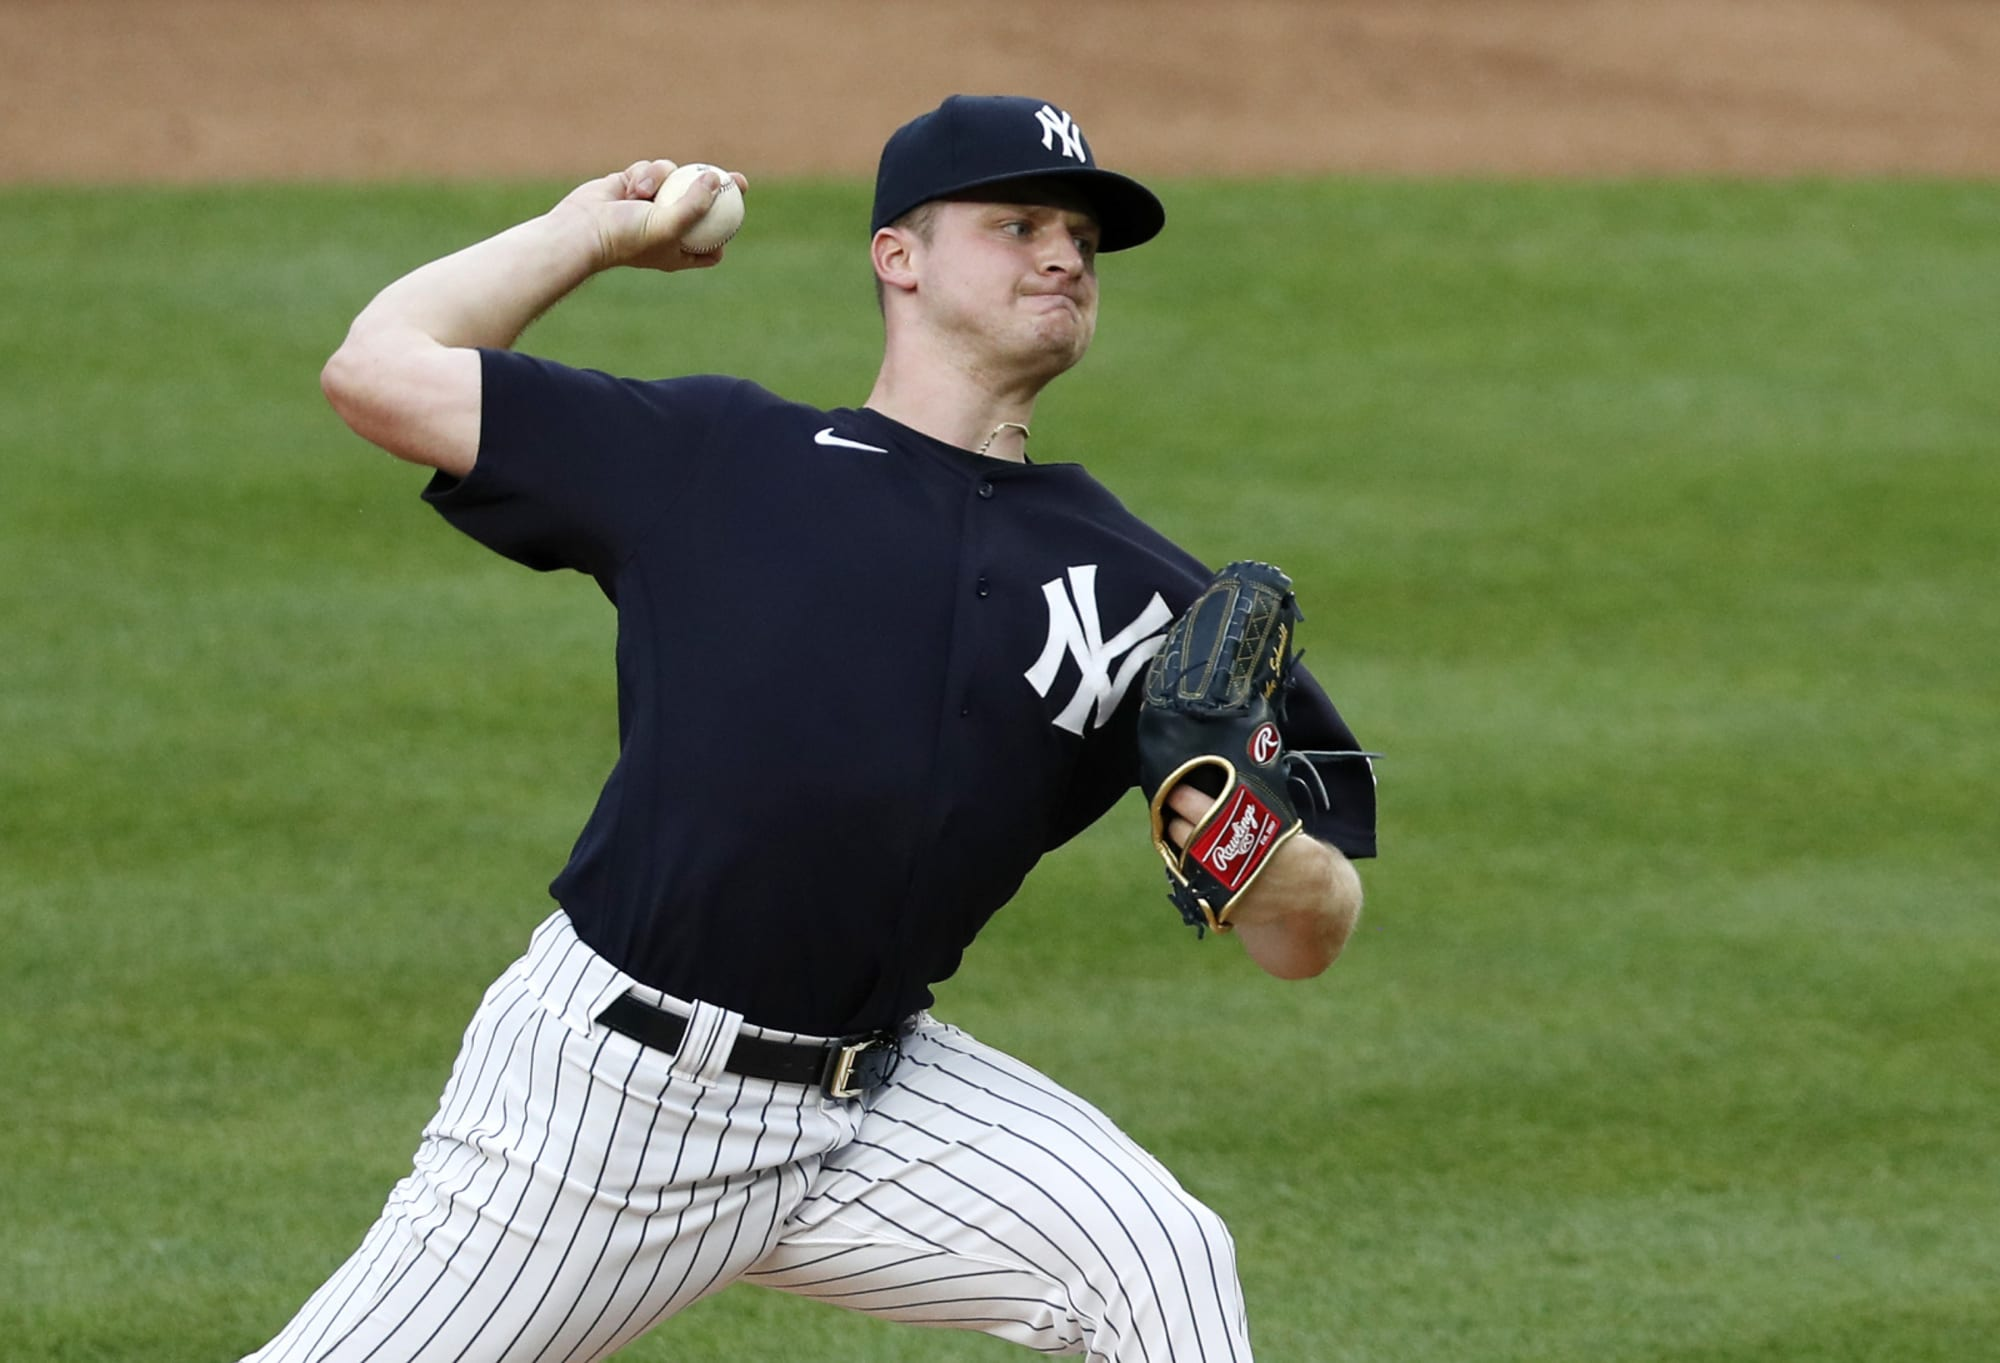 It's time for the Yankees to finally call up Clarke Schmidt